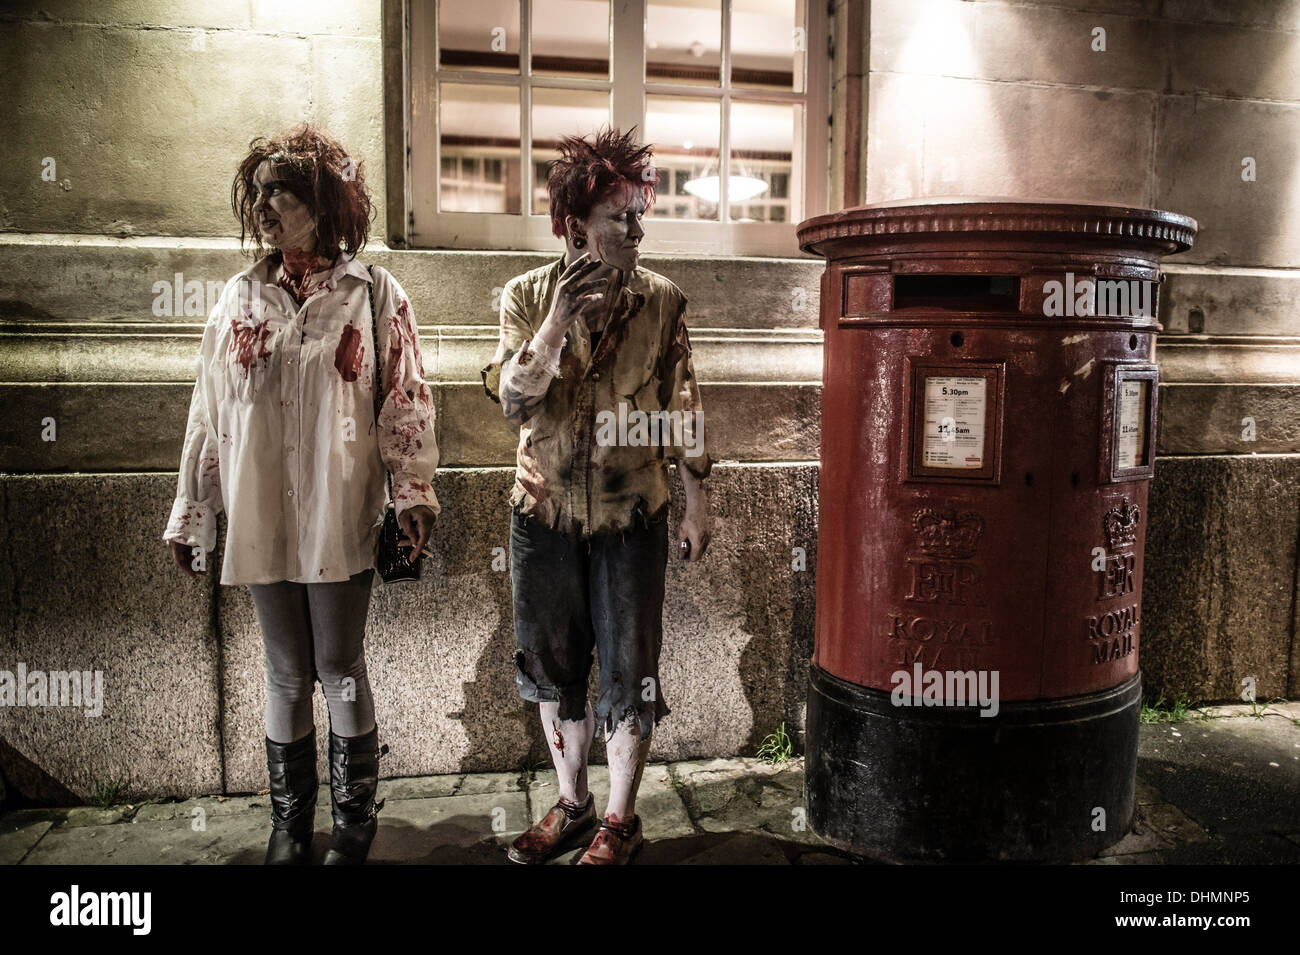 Two women dressed as zombies standing outside at night, UK - Stock Image